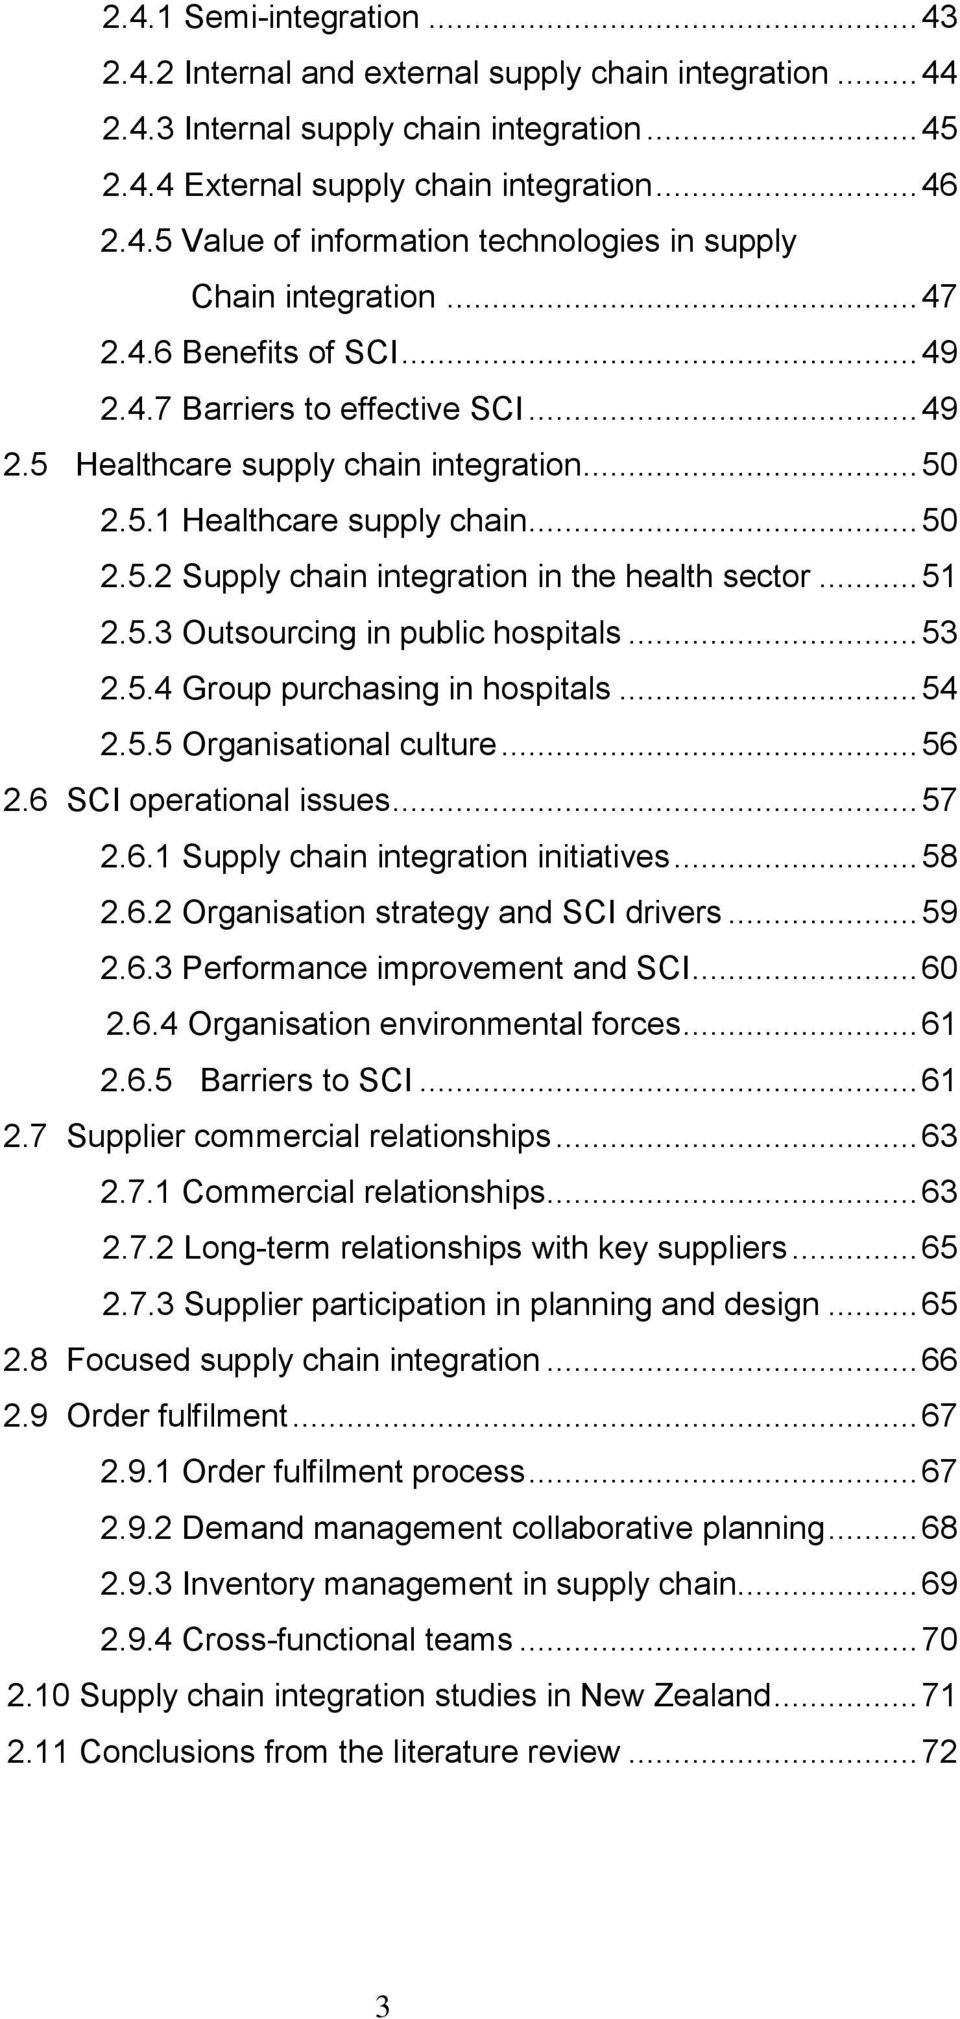 .. 51 2.5.3 Outsourcing in public hospitals... 53 2.5.4 Group purchasing in hospitals... 54 2.5.5 Organisational culture... 56 2.6 SCI operational issues... 57 2.6.1 Supply chain integration initiatives.